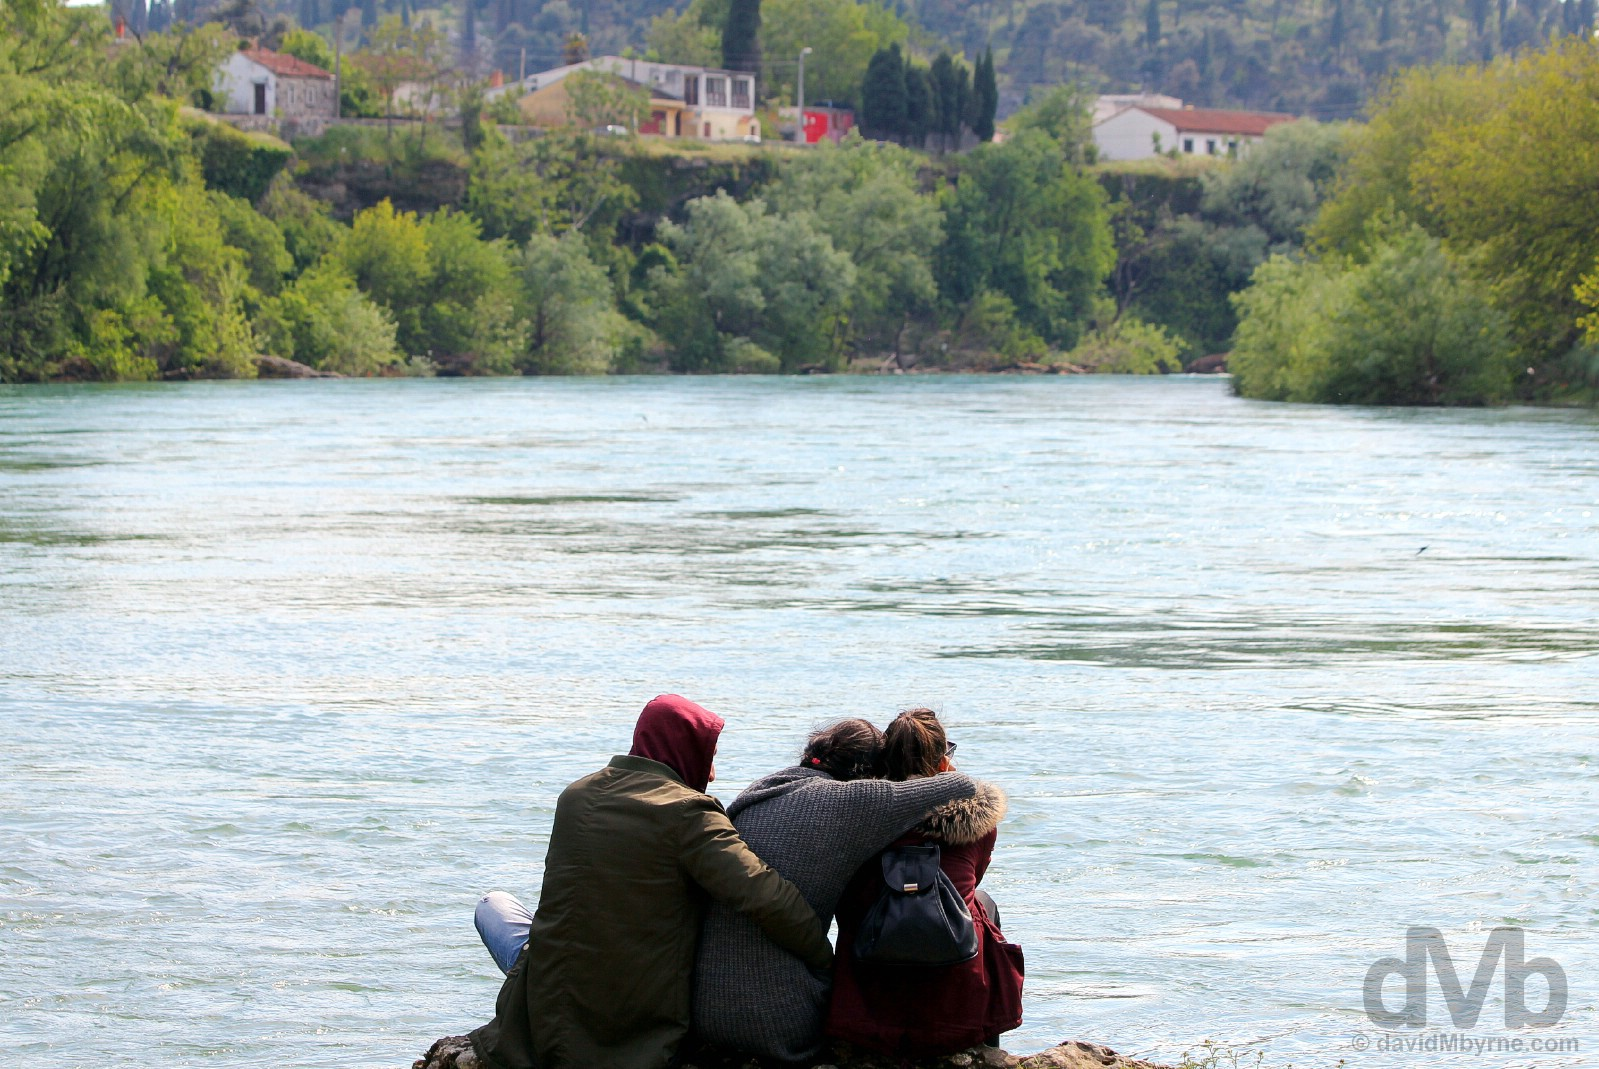 Friends. On the banks of the fast-flowing Moraca River in Podgorica, Montenegro. April 21, 2017.